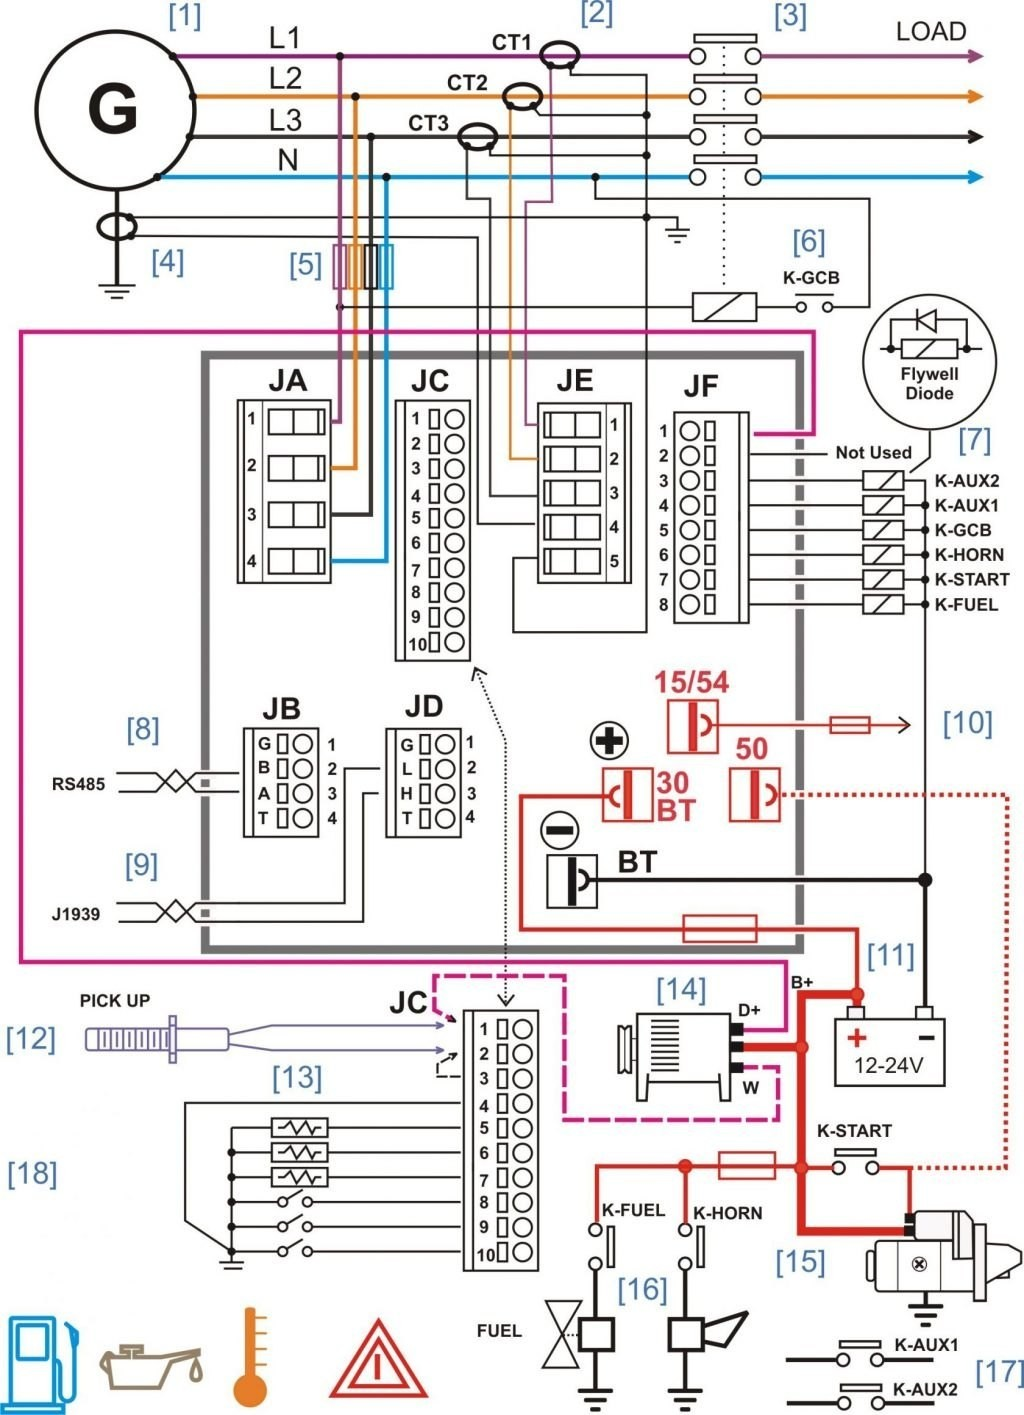 hight resolution of peterbilt 389 radio wiring diagram residential electrical symbols u2022 peterbilt 388 wiring diagram peterbilt 389